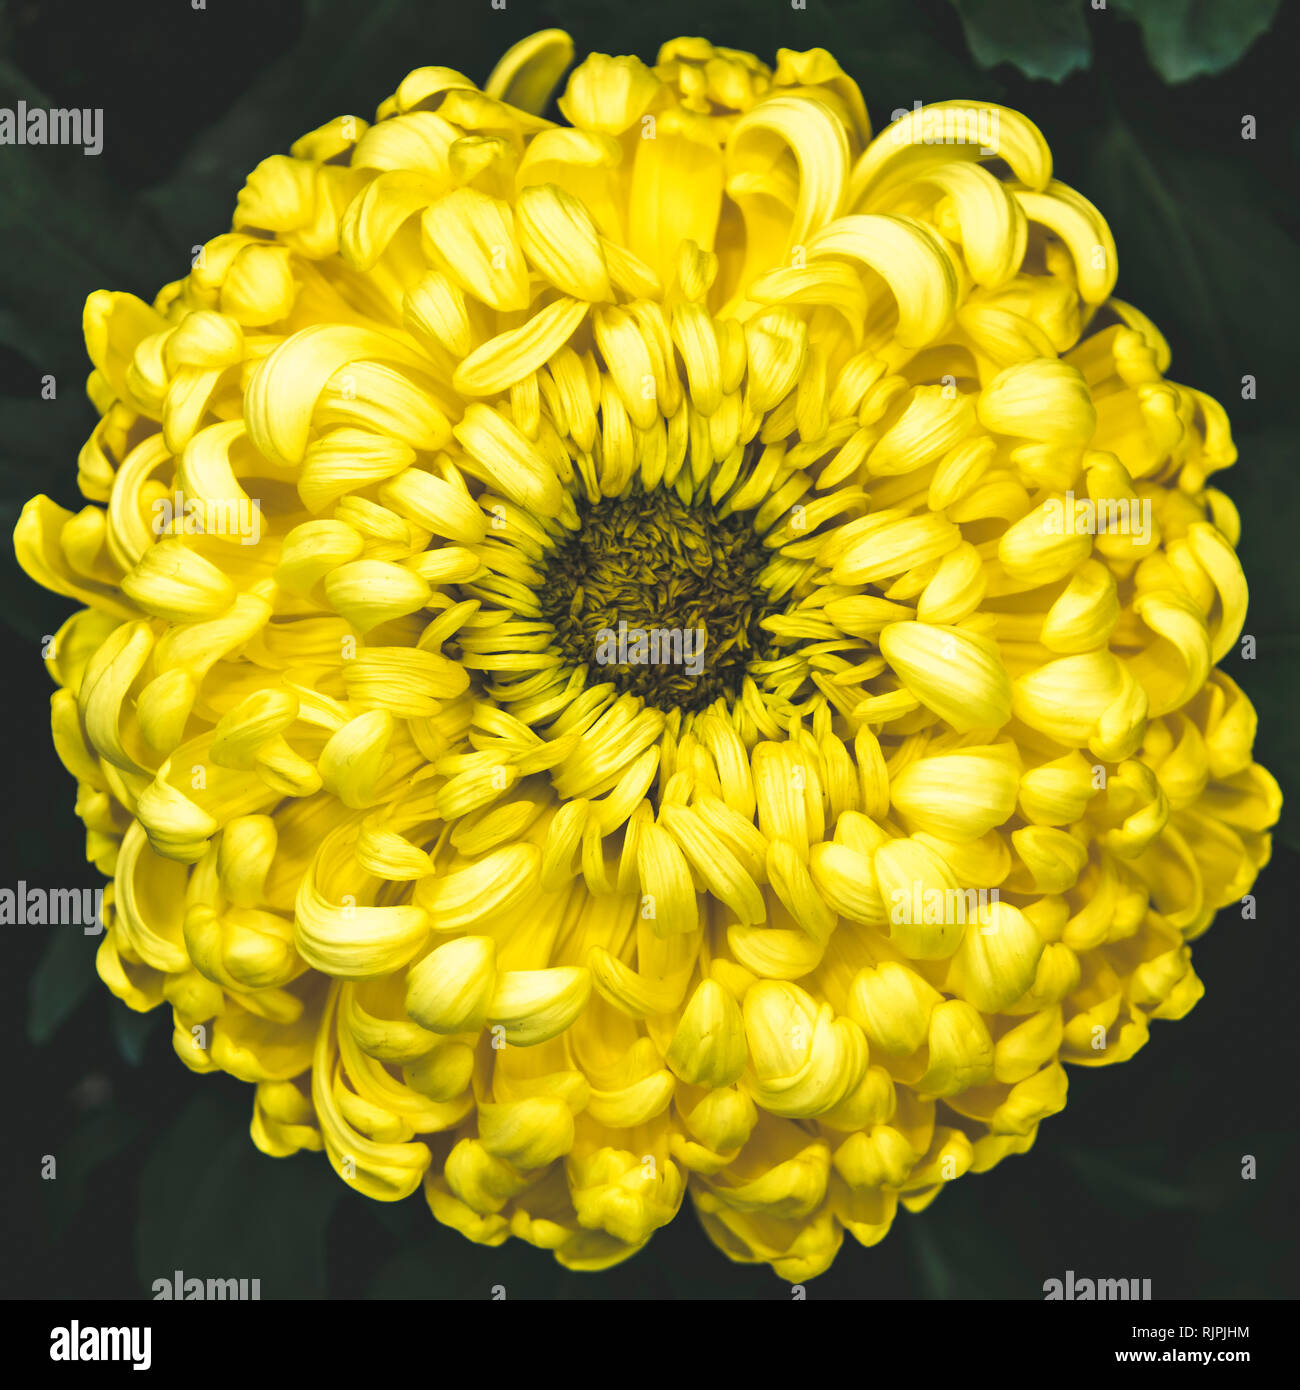 Single bright pastel yellow chrysanthemum flower petal in full blossom close up details isolated background in elegant muted colours - Stock Image